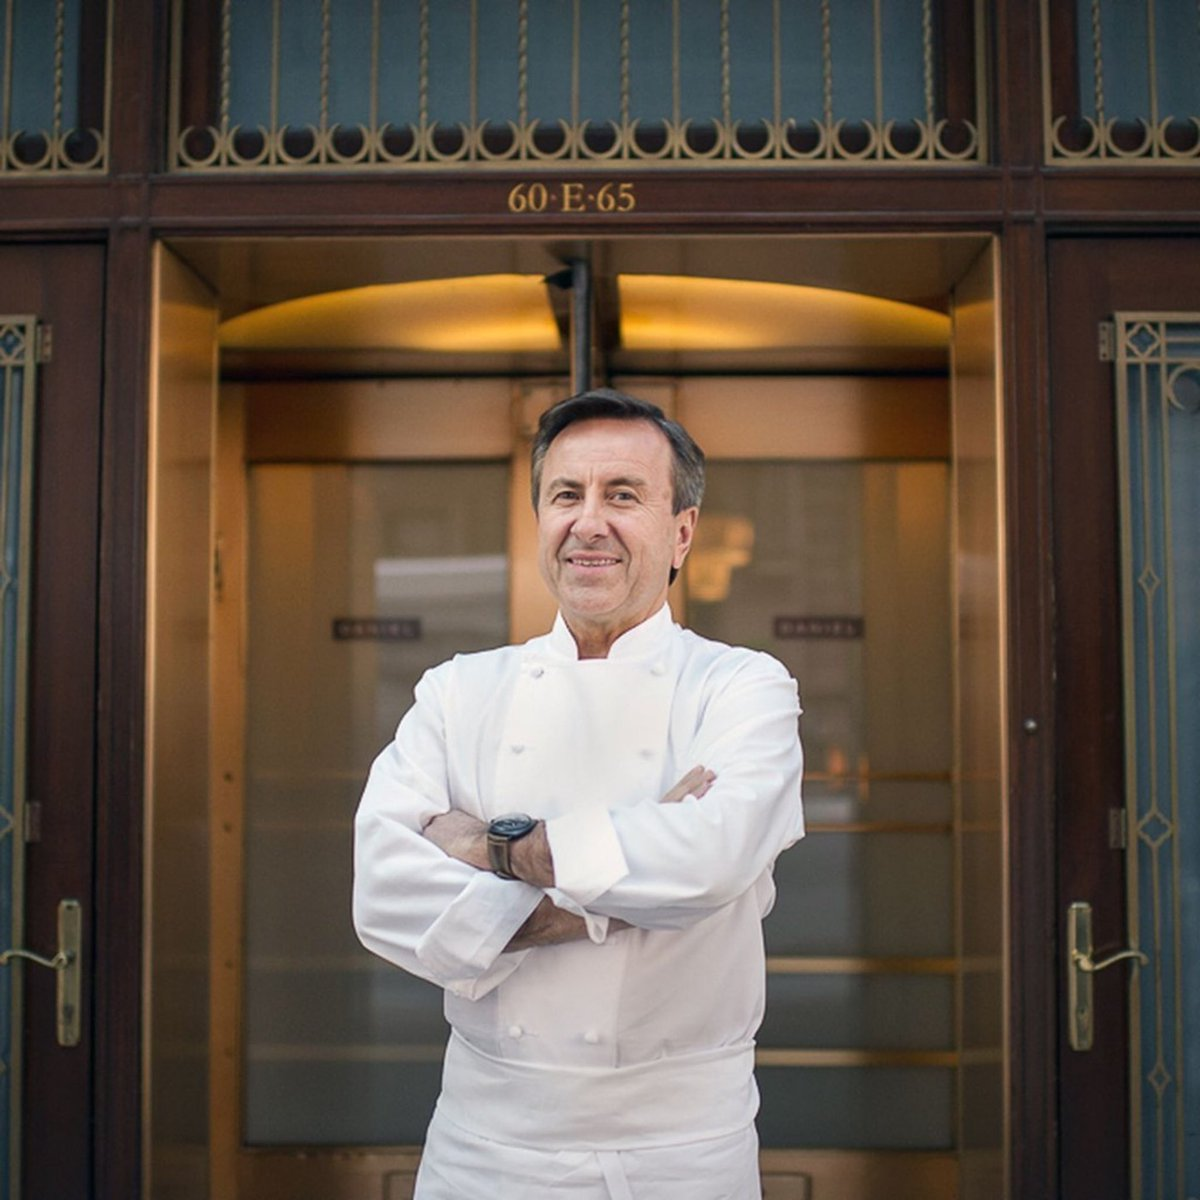 Chef @DanielBoulud tells @AirMailWeekly how he got his acclaimed Restaurant Daniel open for indoor dining. You can listen by clicking Play on the link below. https://t.co/1z9VrThcAl https://t.co/b6HViAuRXI